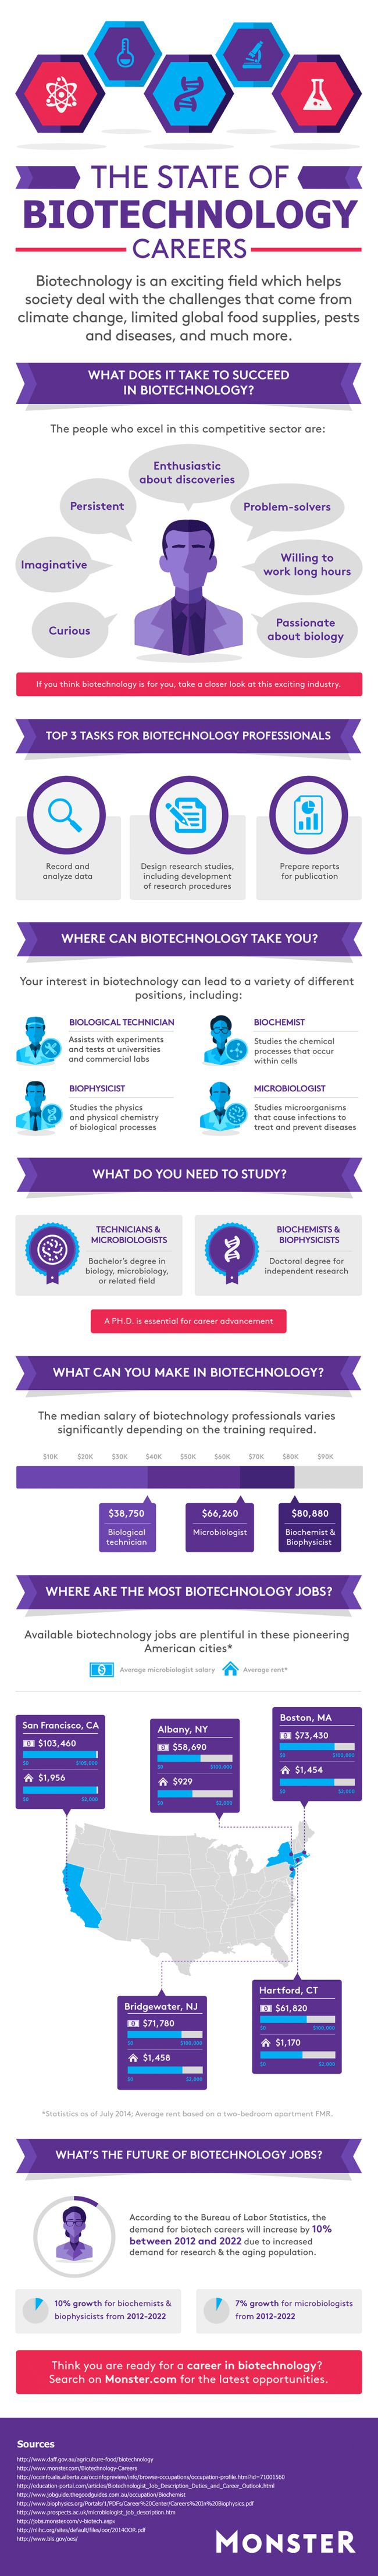 Biotechnology Careers – Career Path Information #world-pharma.org http://pharma.remmont.com/biotechnology-careers-career-path-information-world-pharma-org/  #biotechnology careers # Biotechnology Careers Biotechnology Career Overview If biology is your bag, you may be interested in biotech careers. Biological technicians often work at universities or in commercial labs assisting with experiments and tests. Biochemists, biophysicists and microbiologists are biotech jobs worked in…